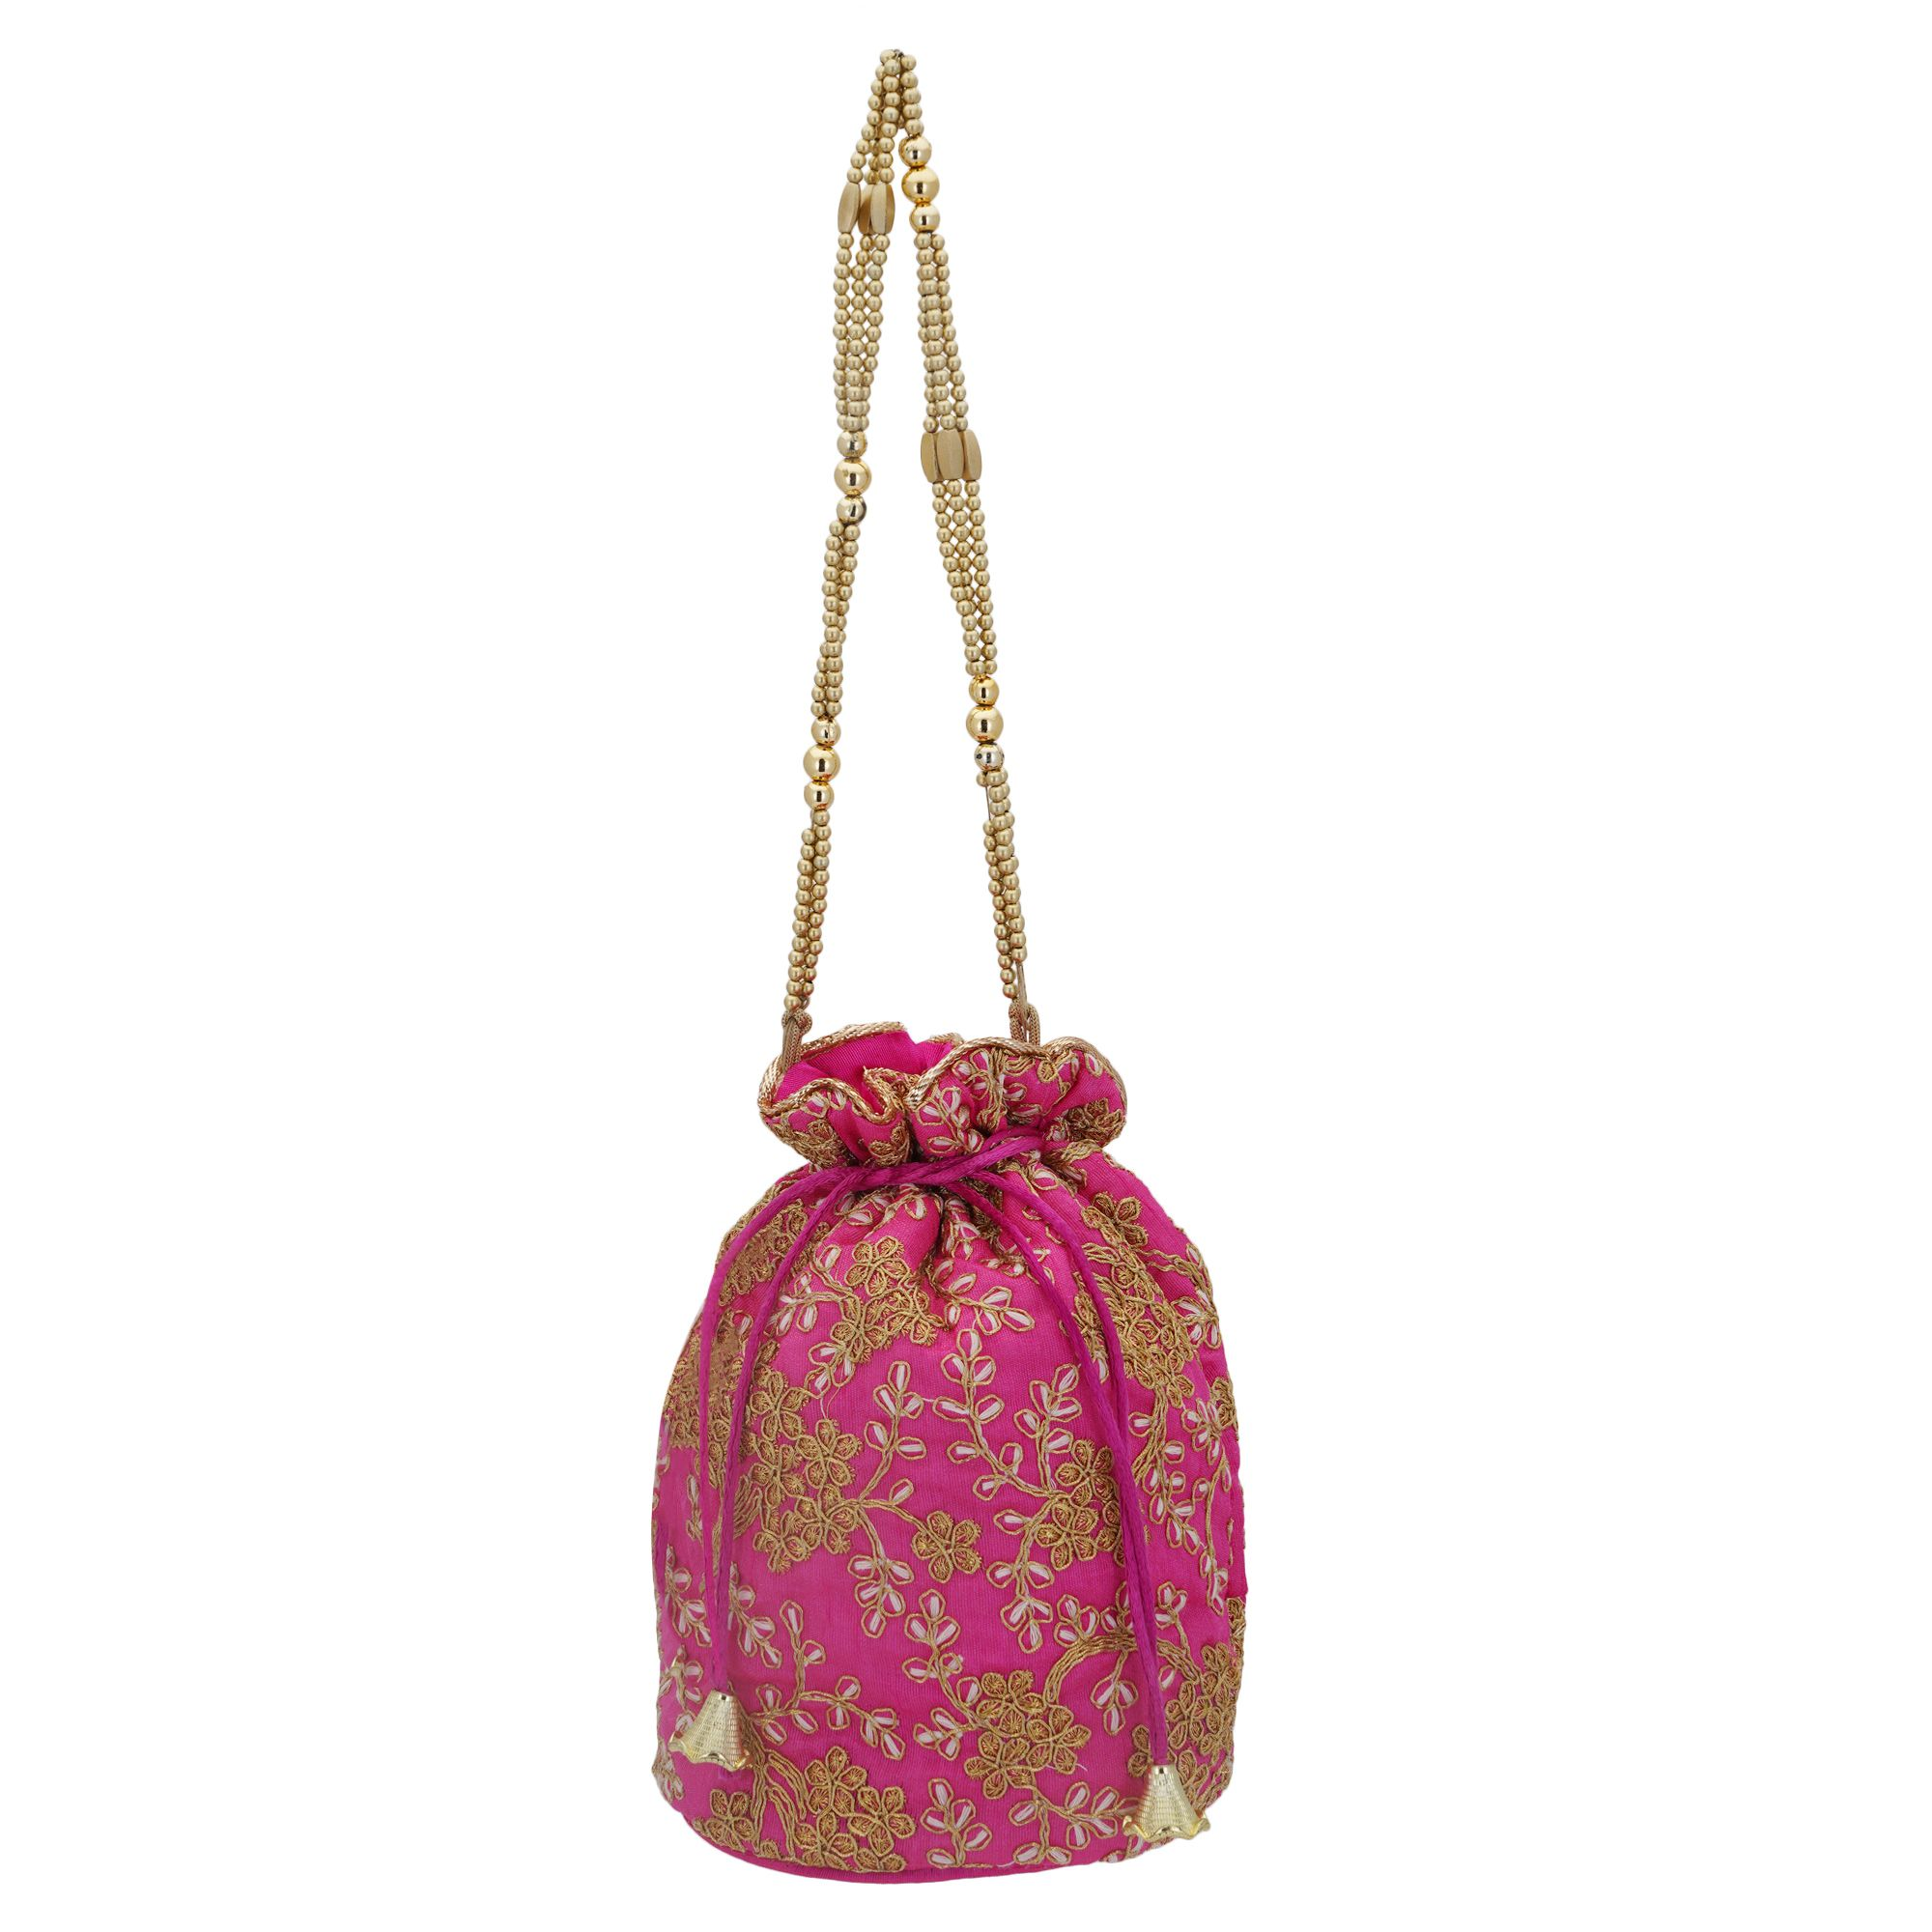 Pink Embroidered Potli Bag in Golden Zari and Beads 1